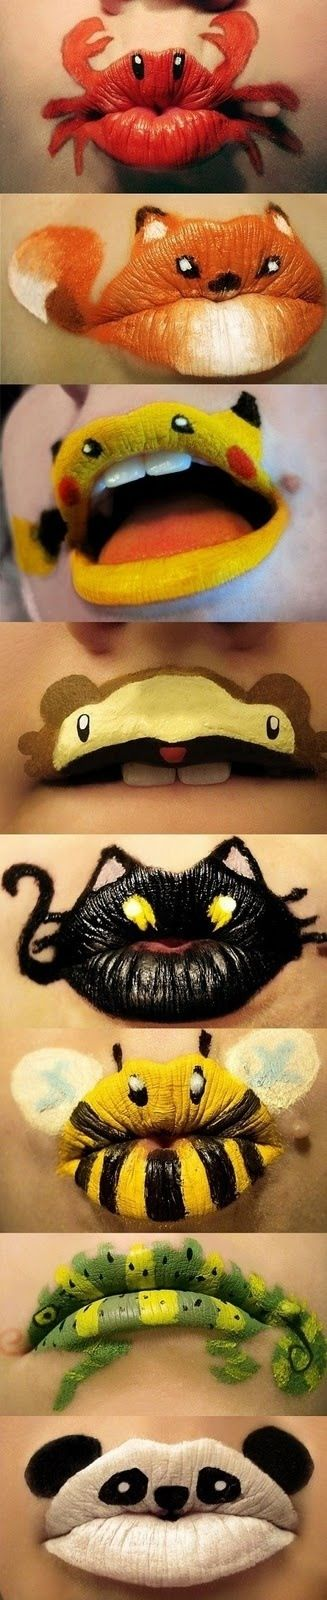 Lip animals super cute ideas